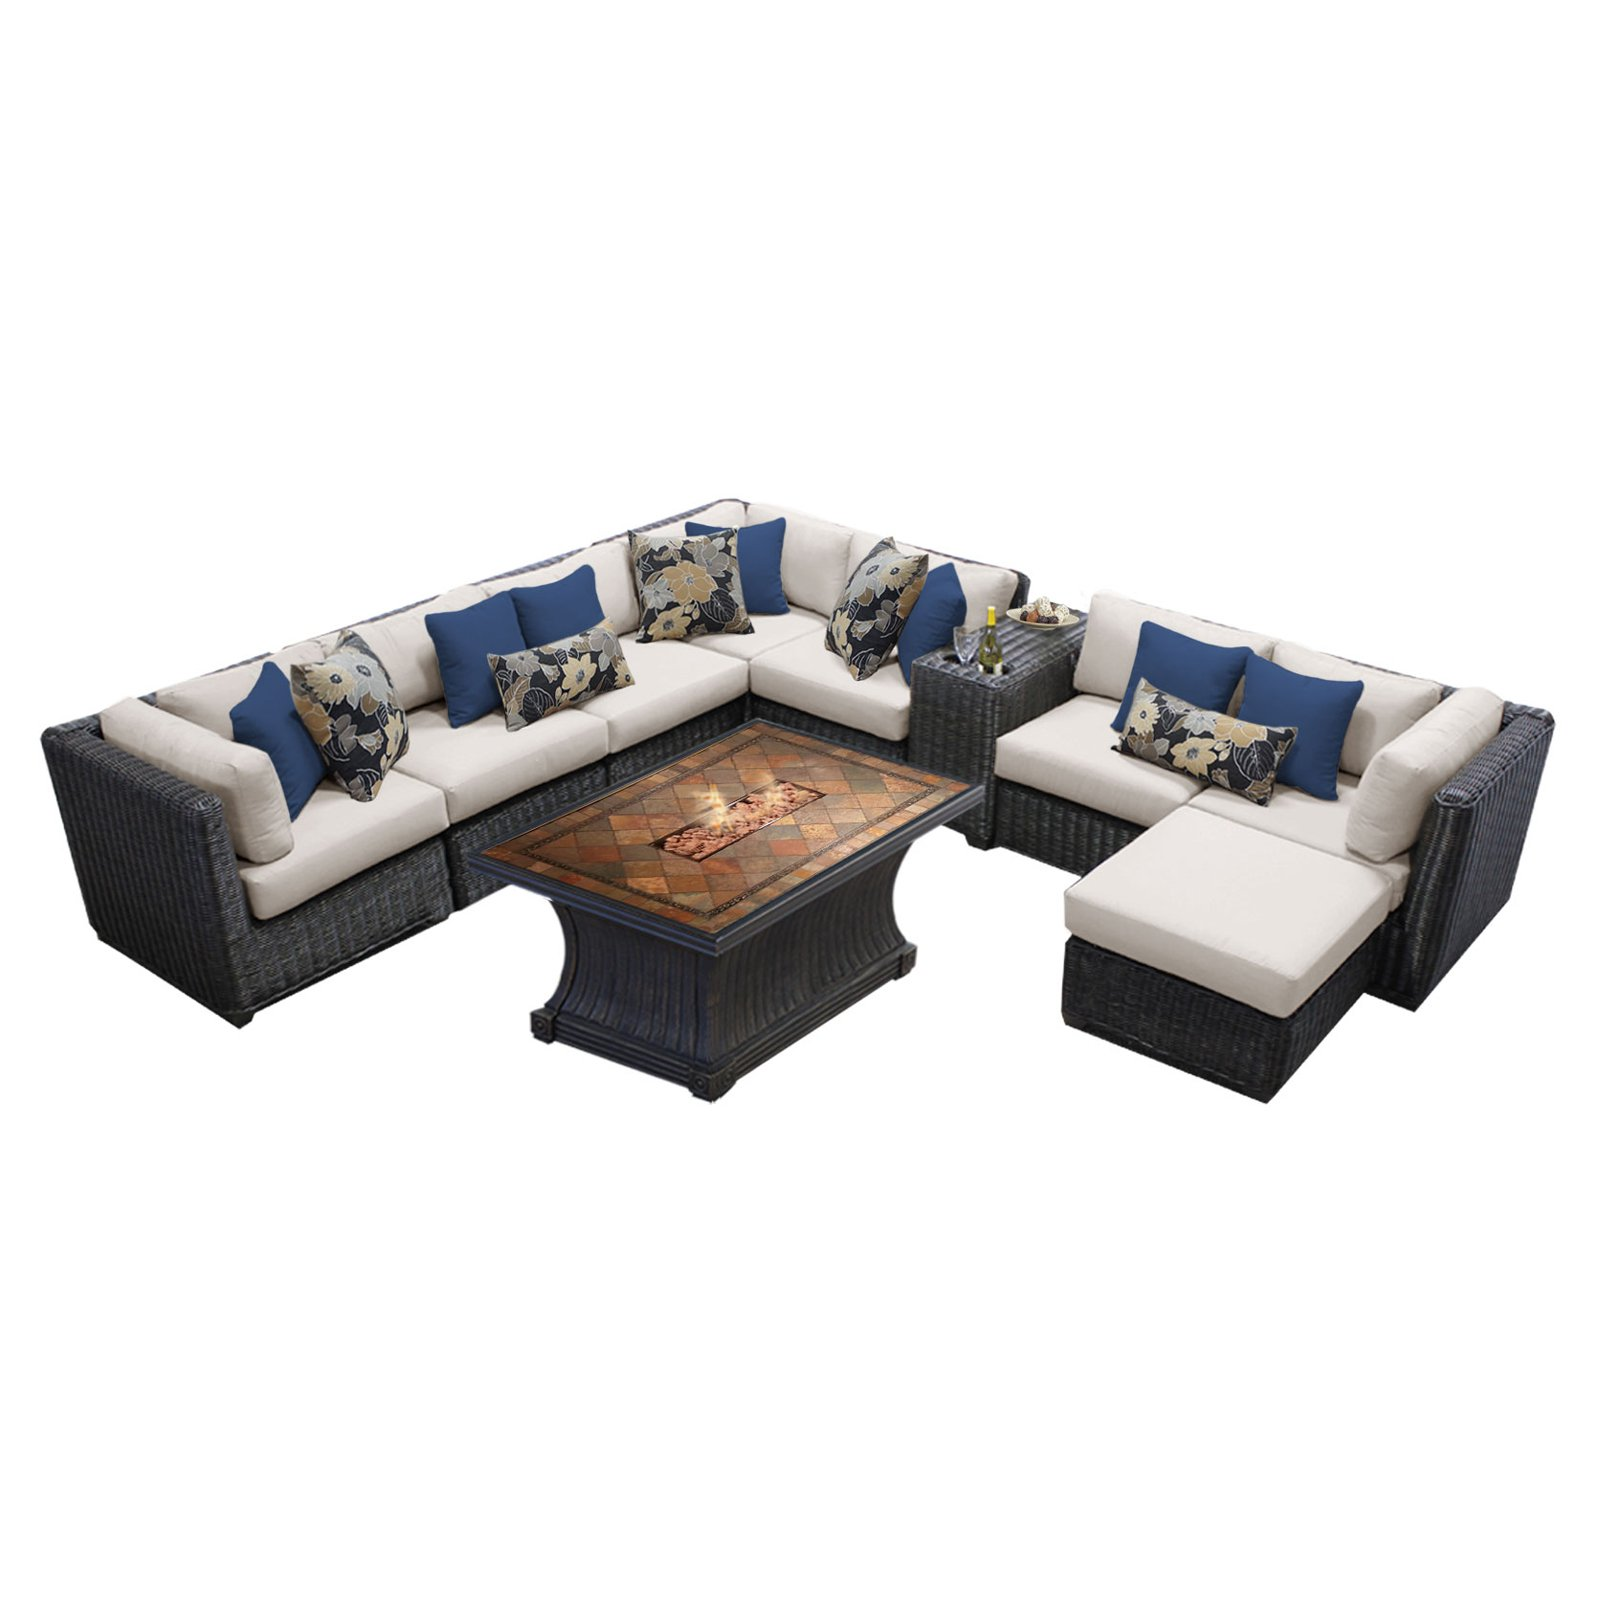 TK Classics Venice Wicker 10 Piece Patio Conversation Set with 2 Sets of Cushion Covers by Delacora